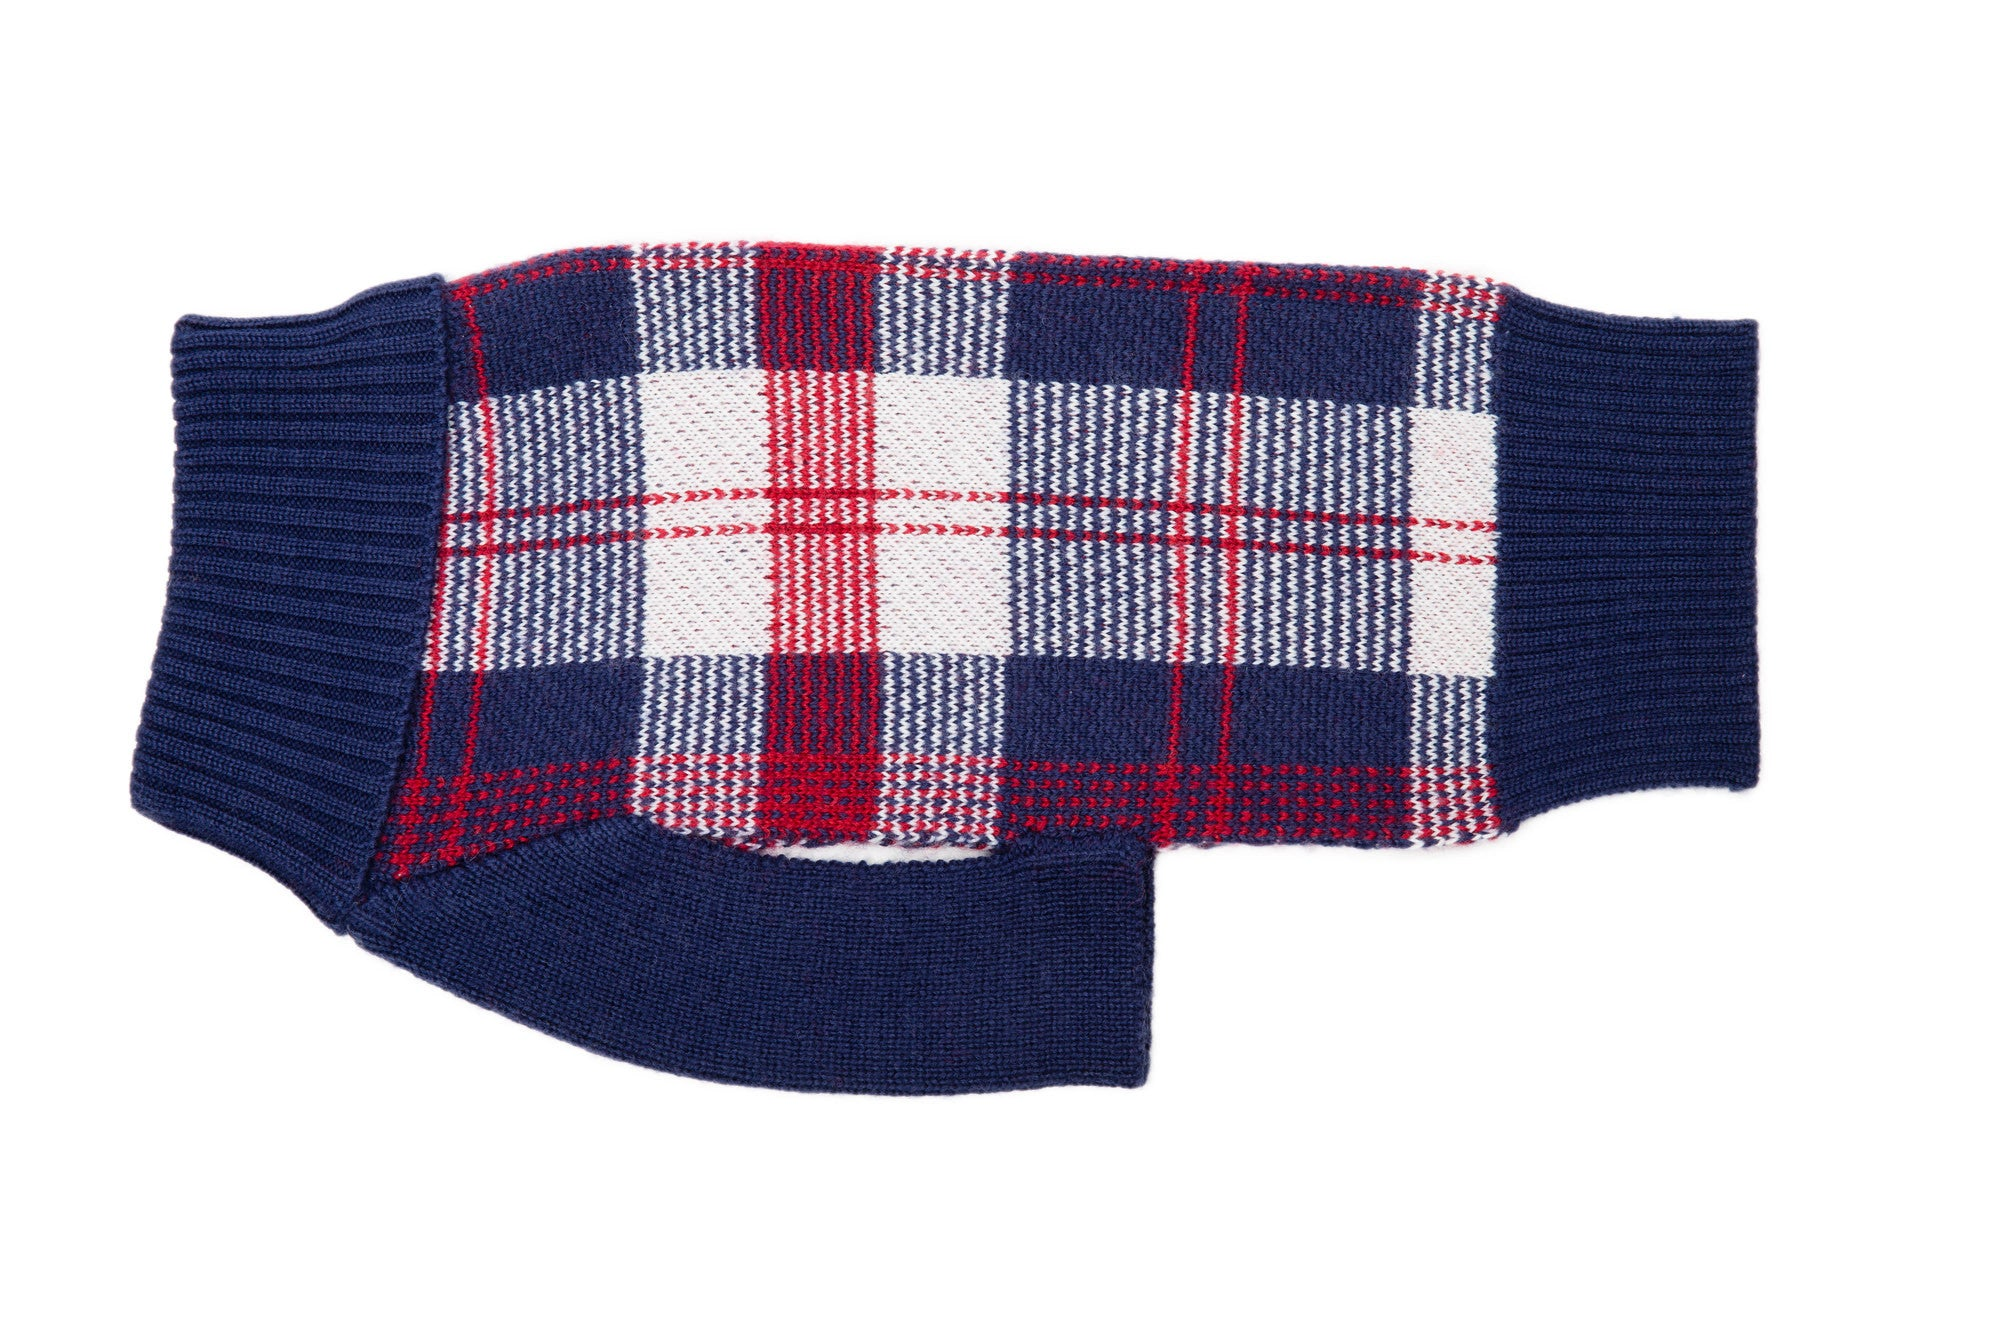 Dog Sweater - CS - Blackcomb Plaid Dog Sweaters